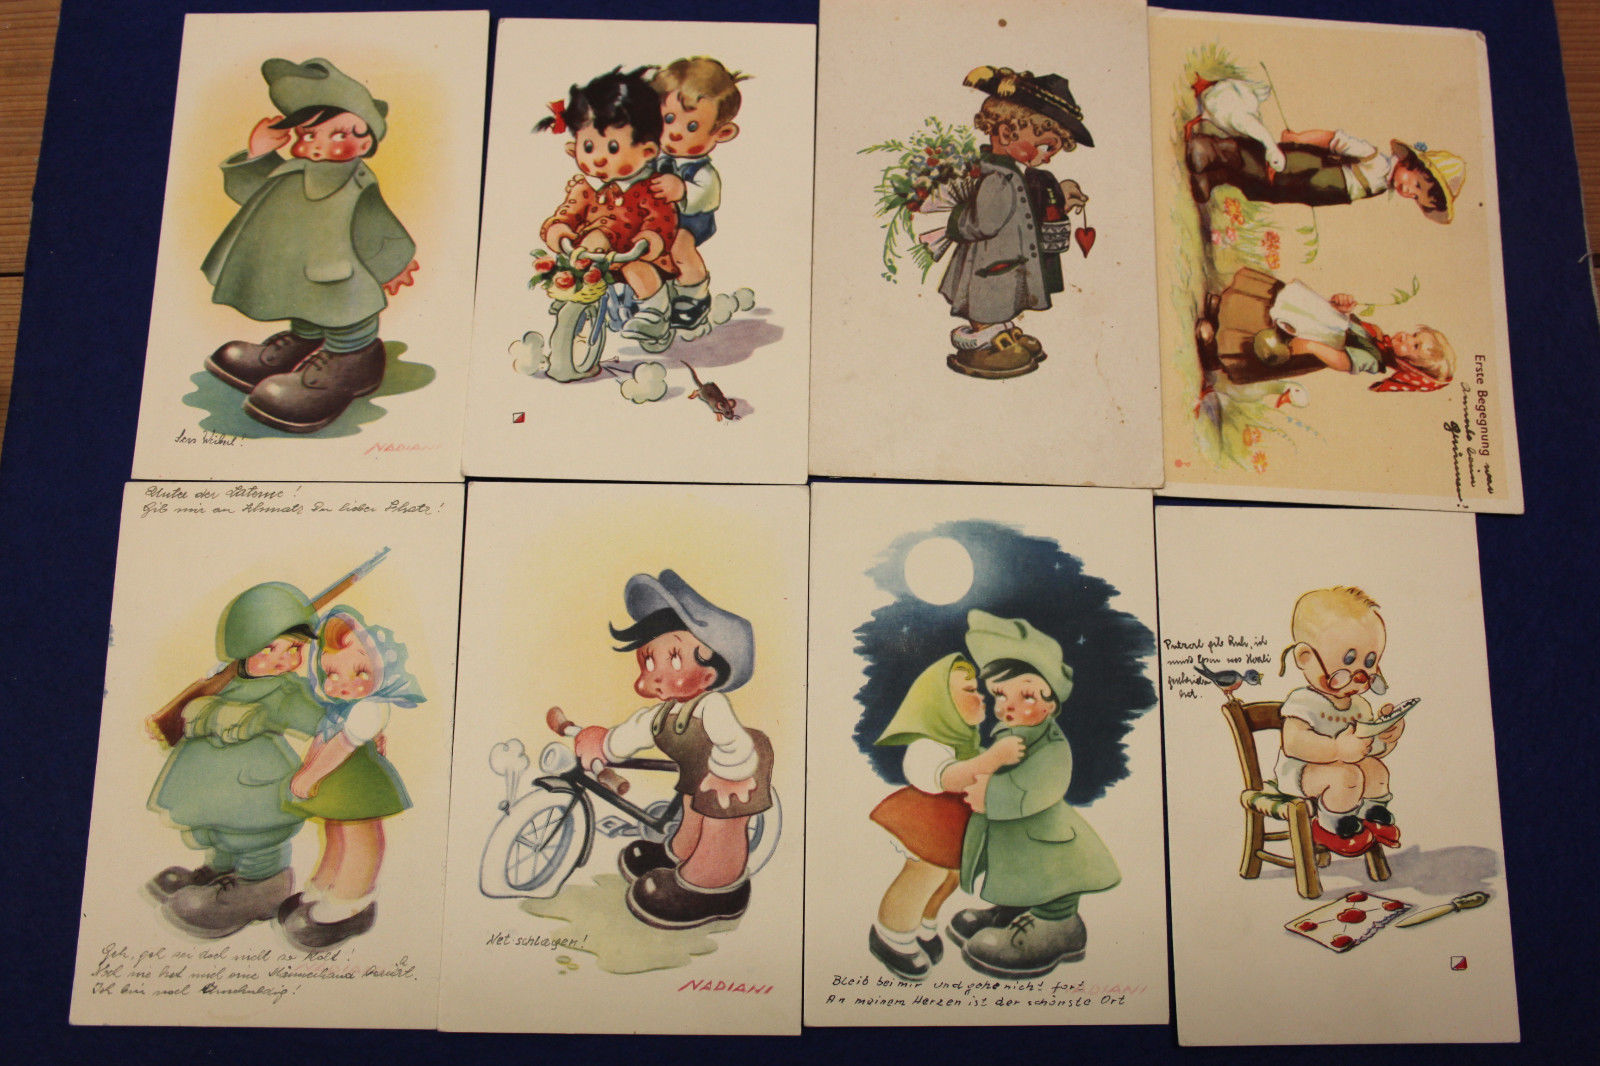 8 Italian postcards send to Germany (1944)